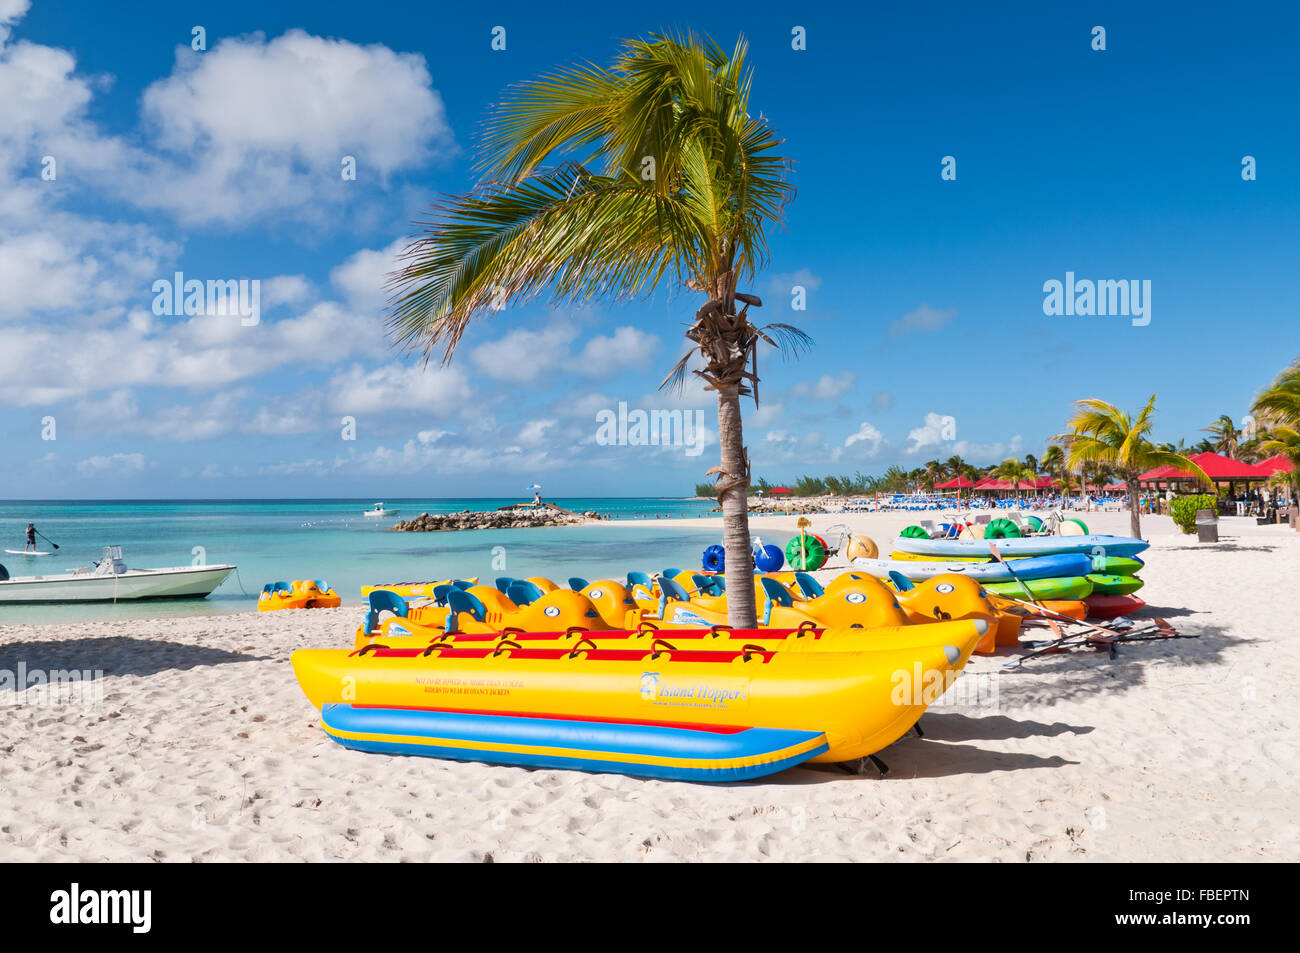 Water sport equipments on the Princess Cays beach, Eleuthera in the Bahamas - Stock Image